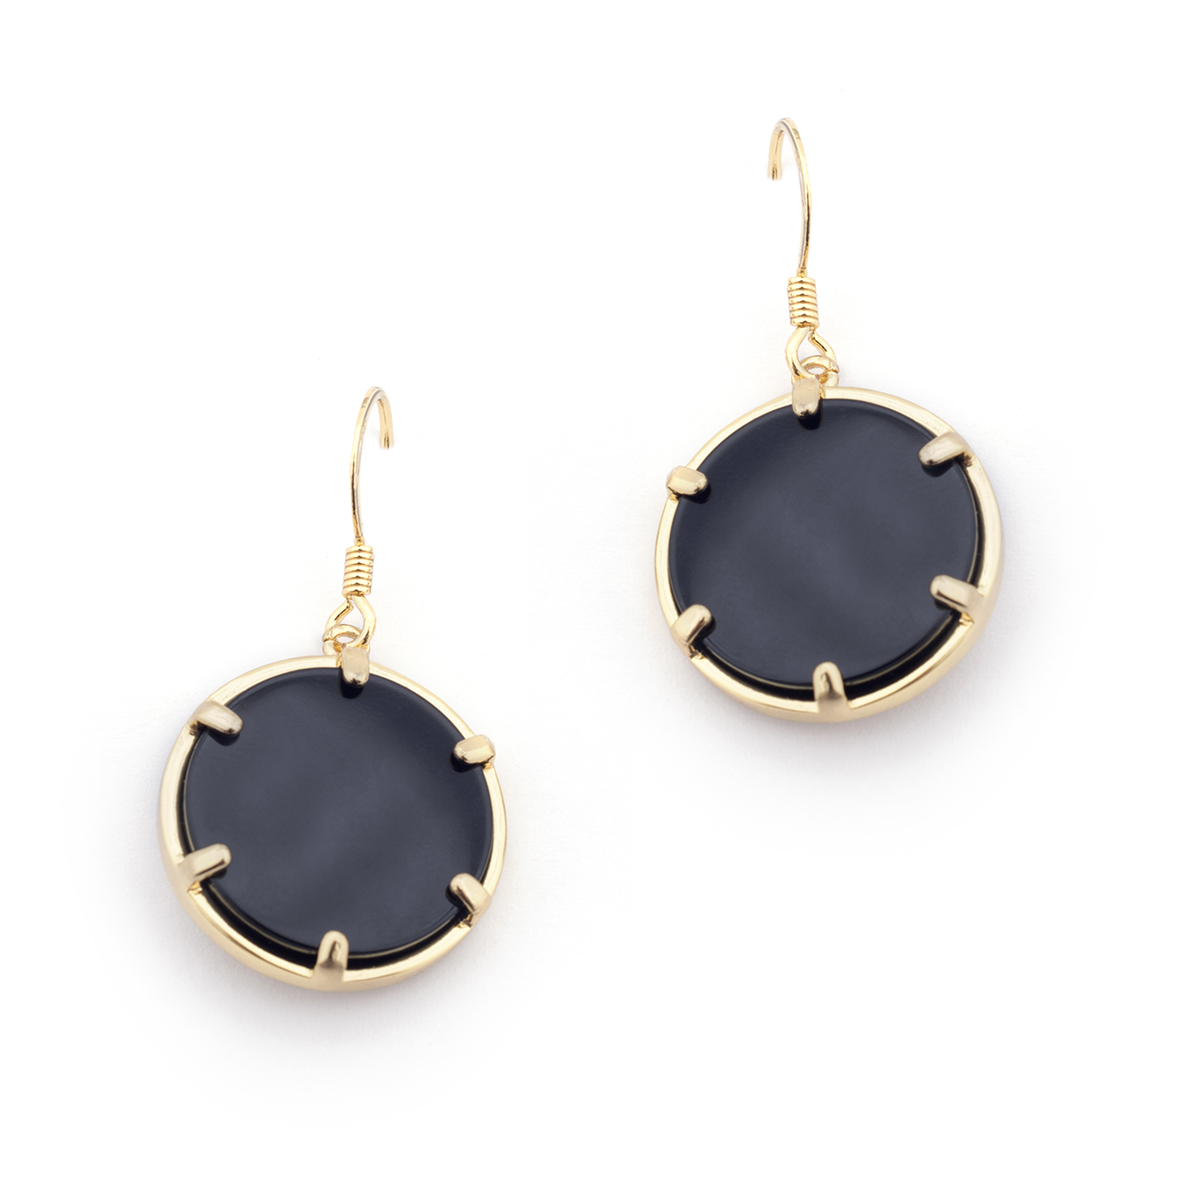 Filigree Disc Earrings - Onyx